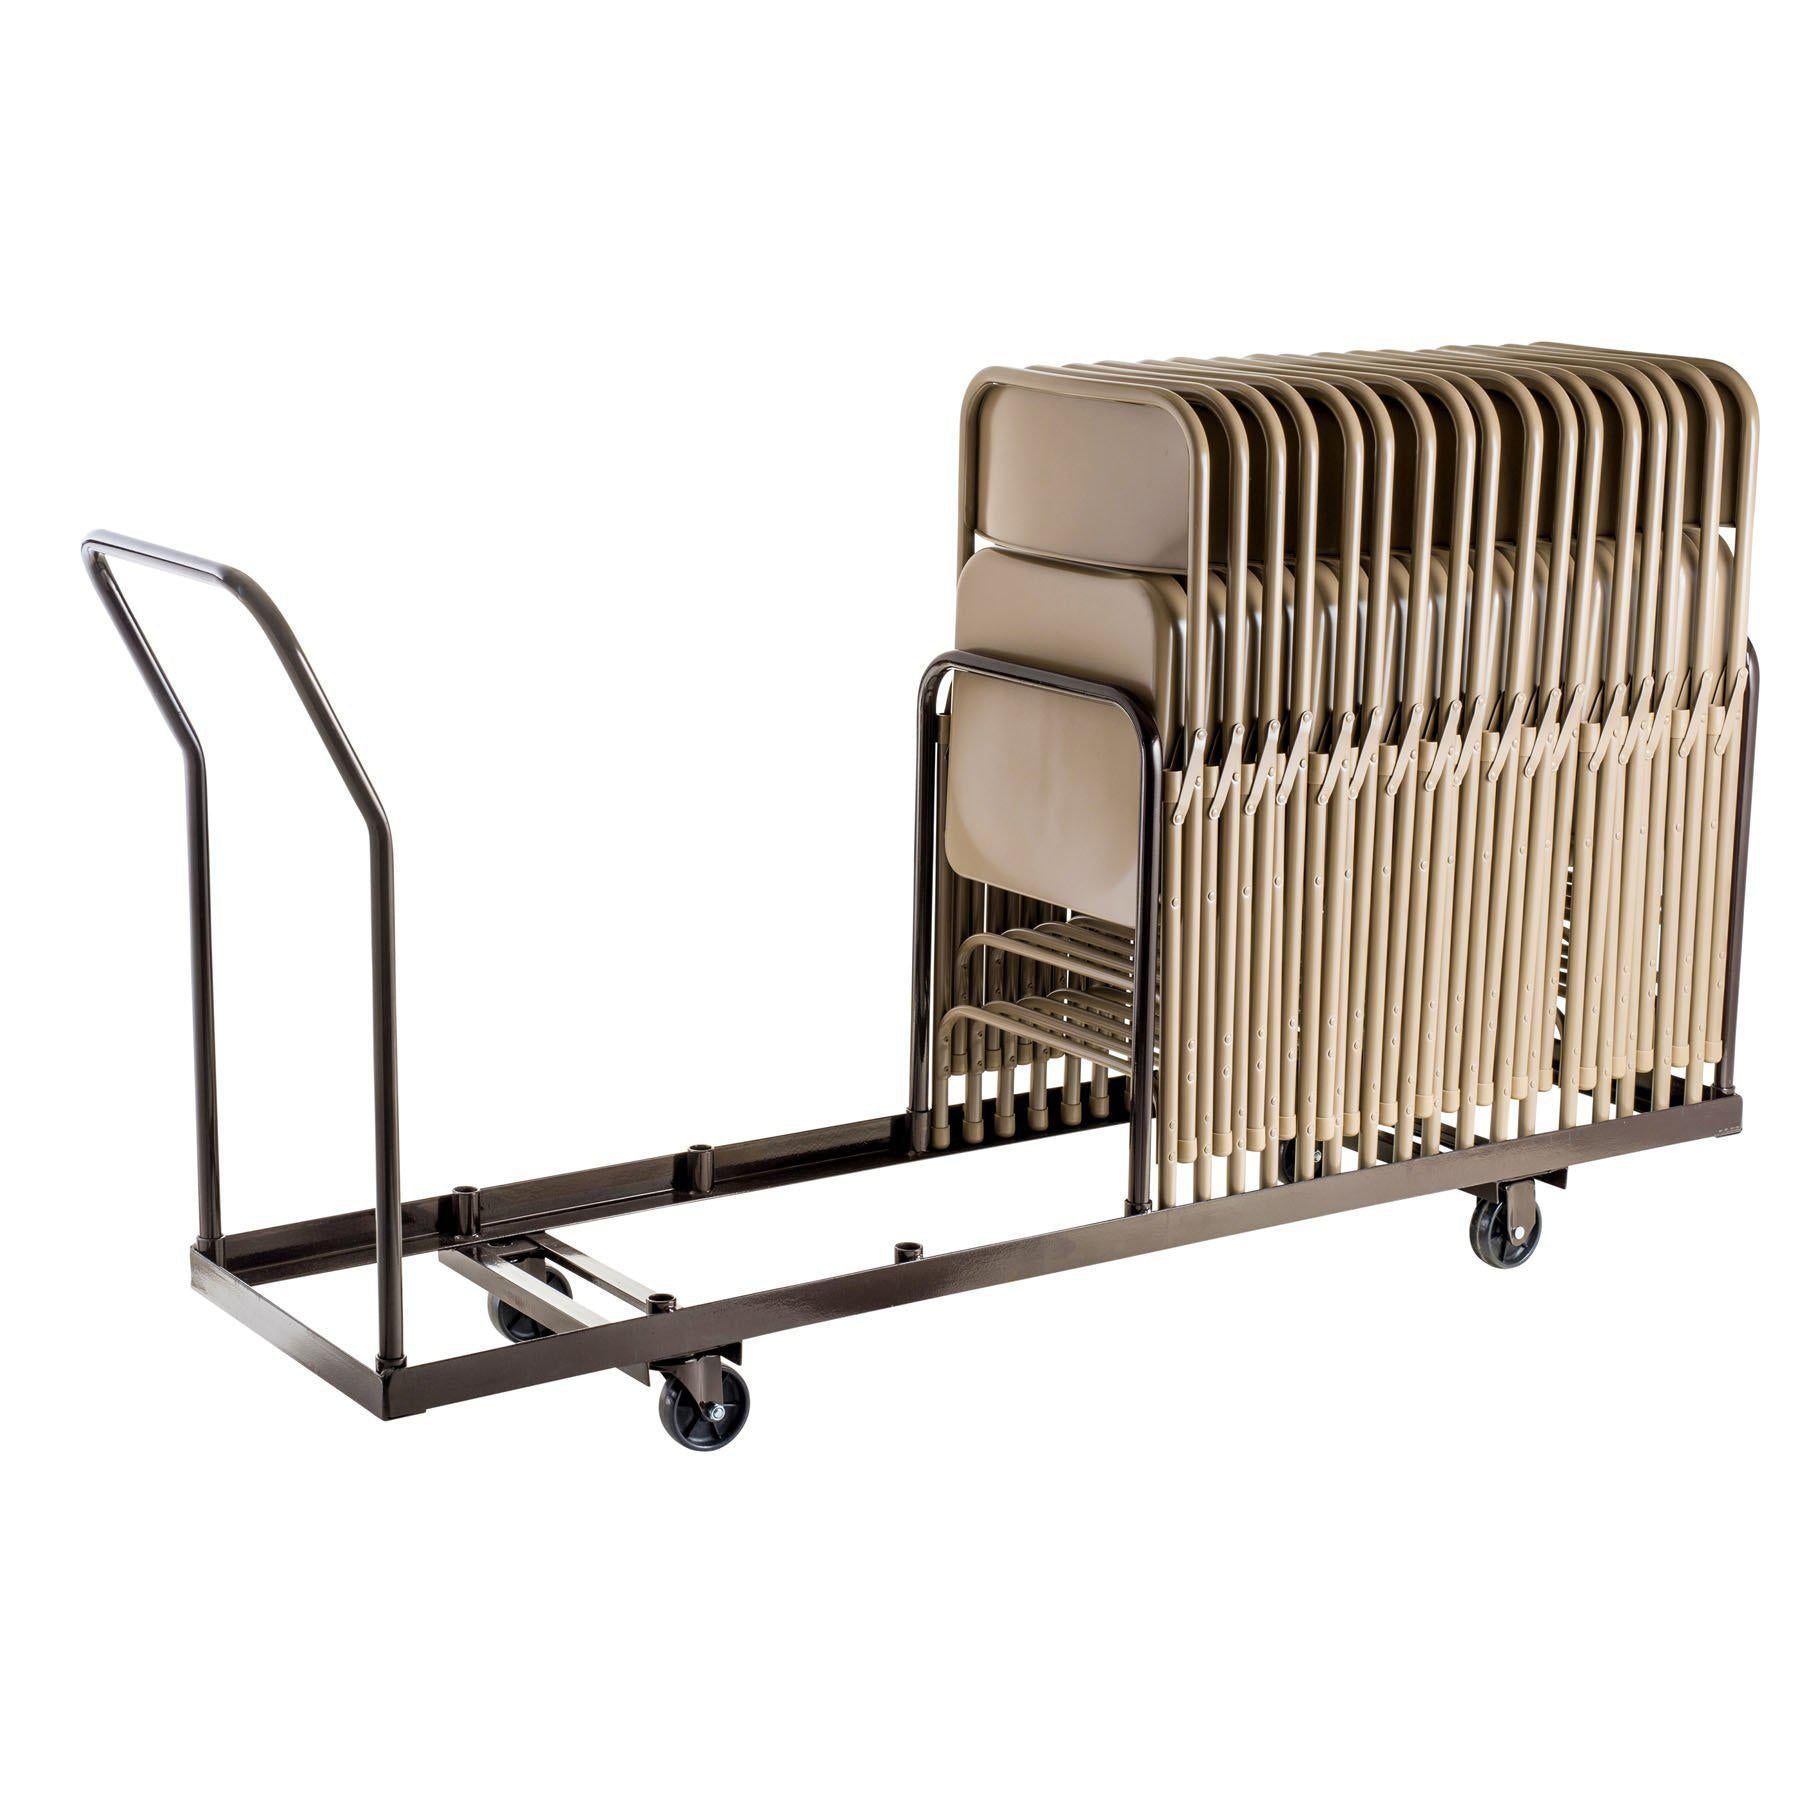 Folding Chair Dolly For Vertical storage, 35 Chair Capacity-Chairs-